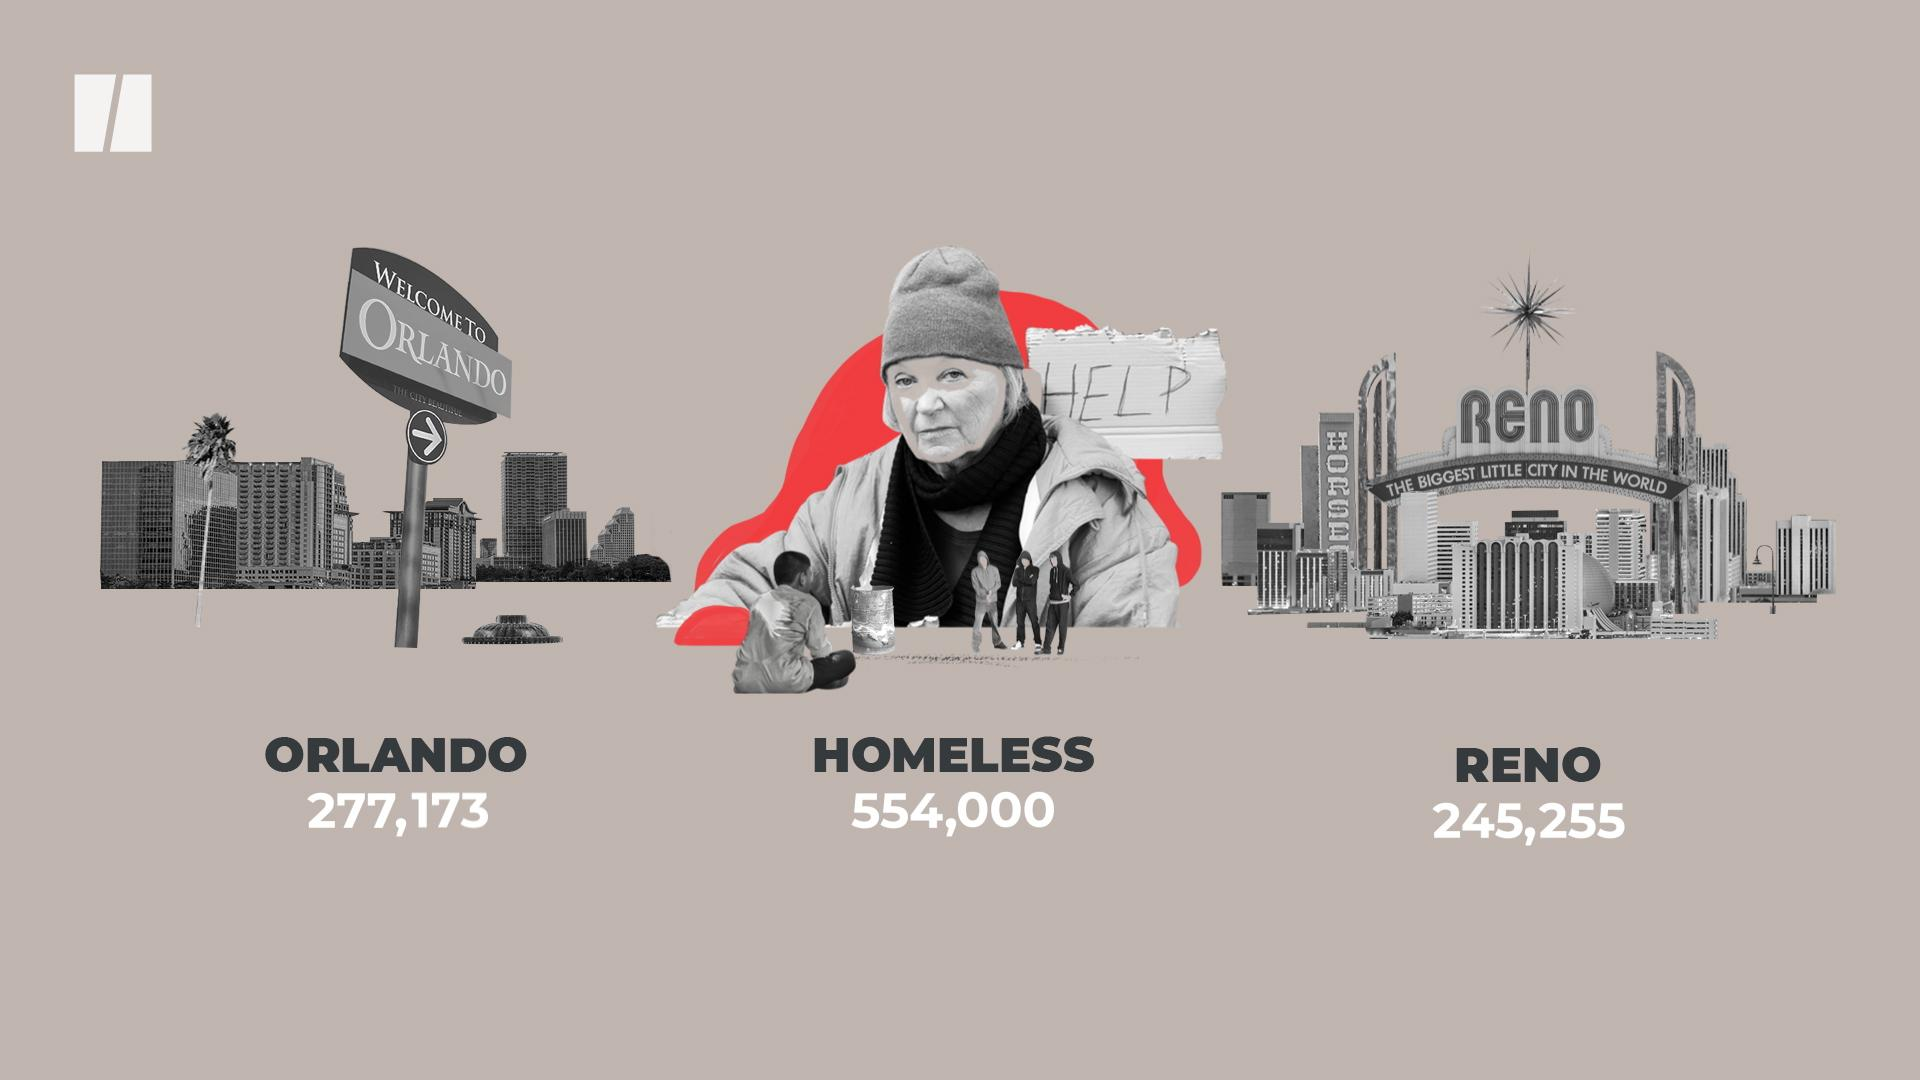 5 Things People Get Wrong About Homelessness